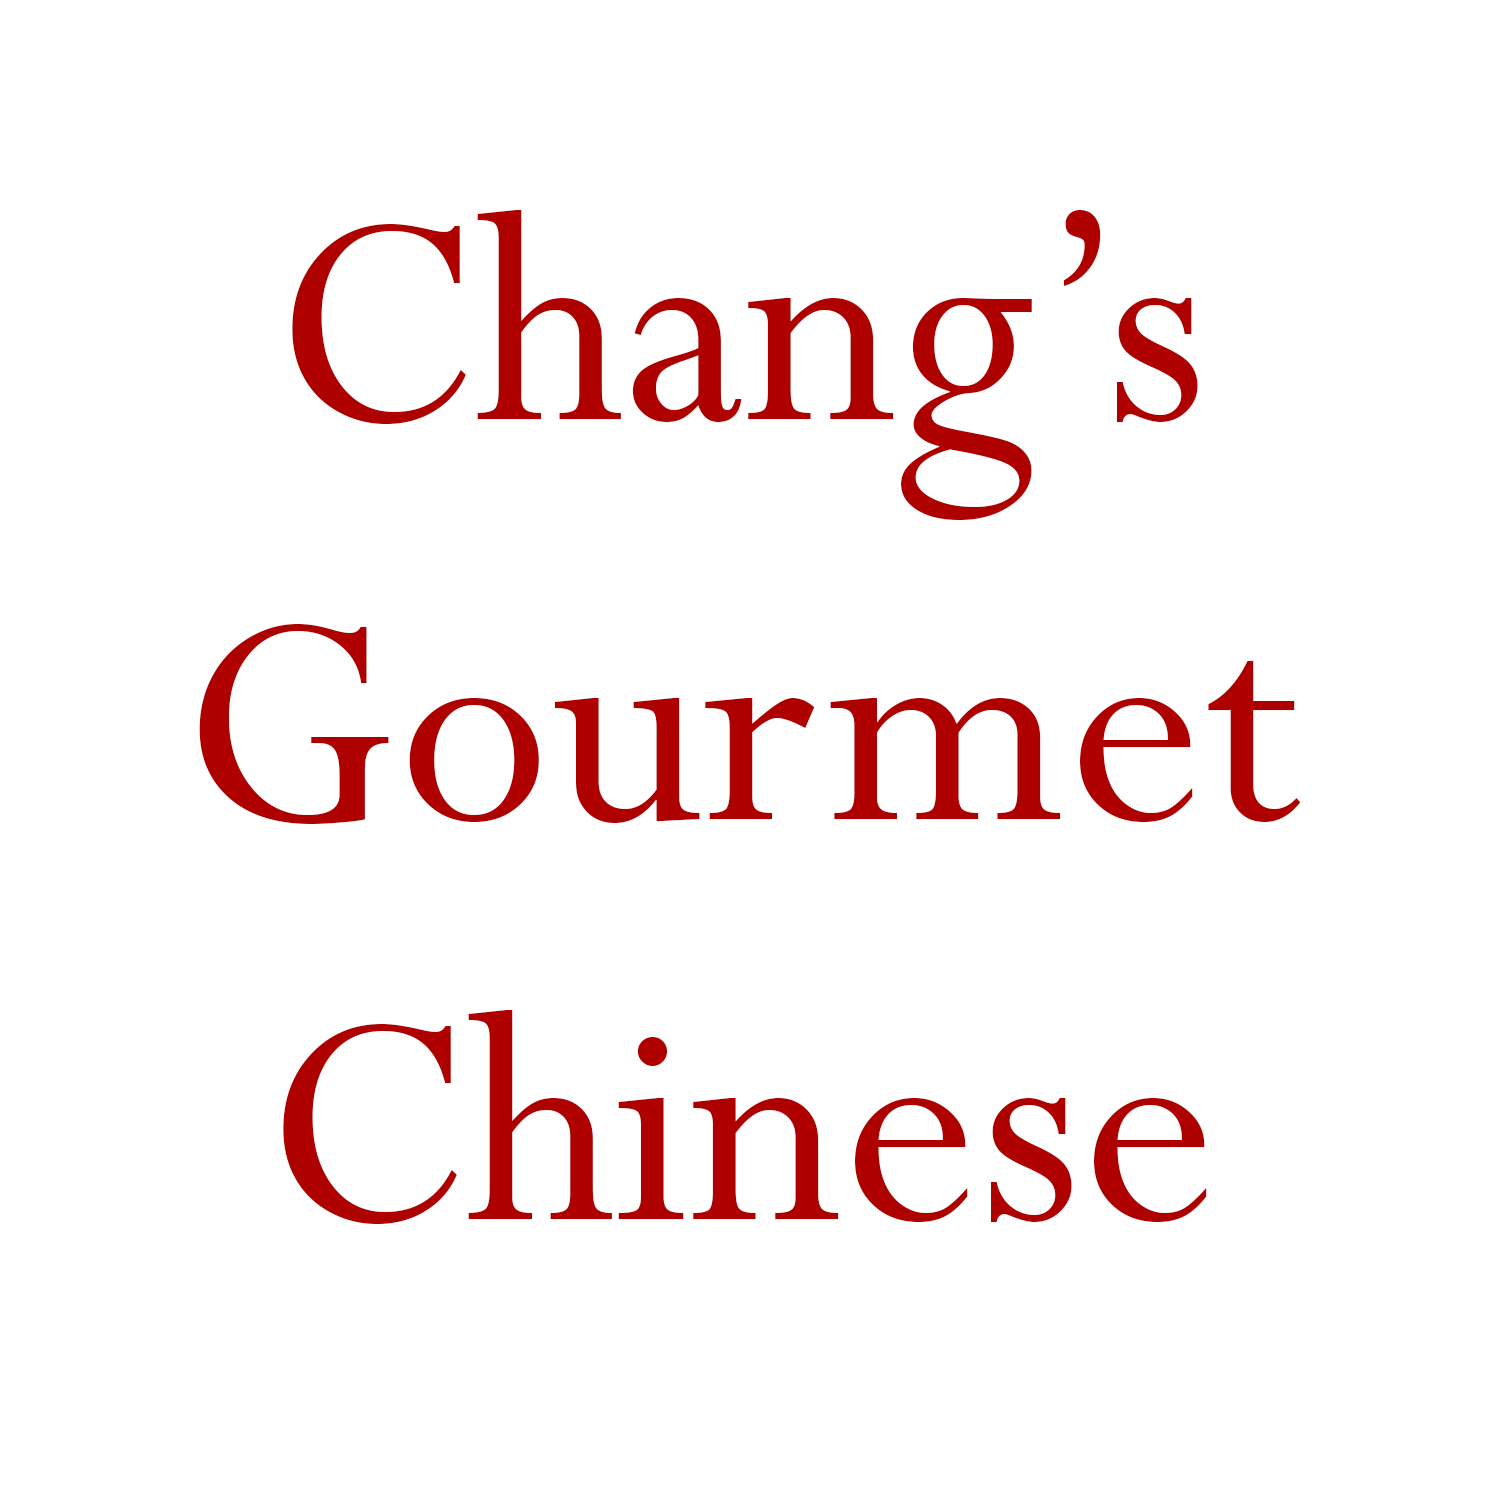 Changs Gourmet Chinese - Tomball